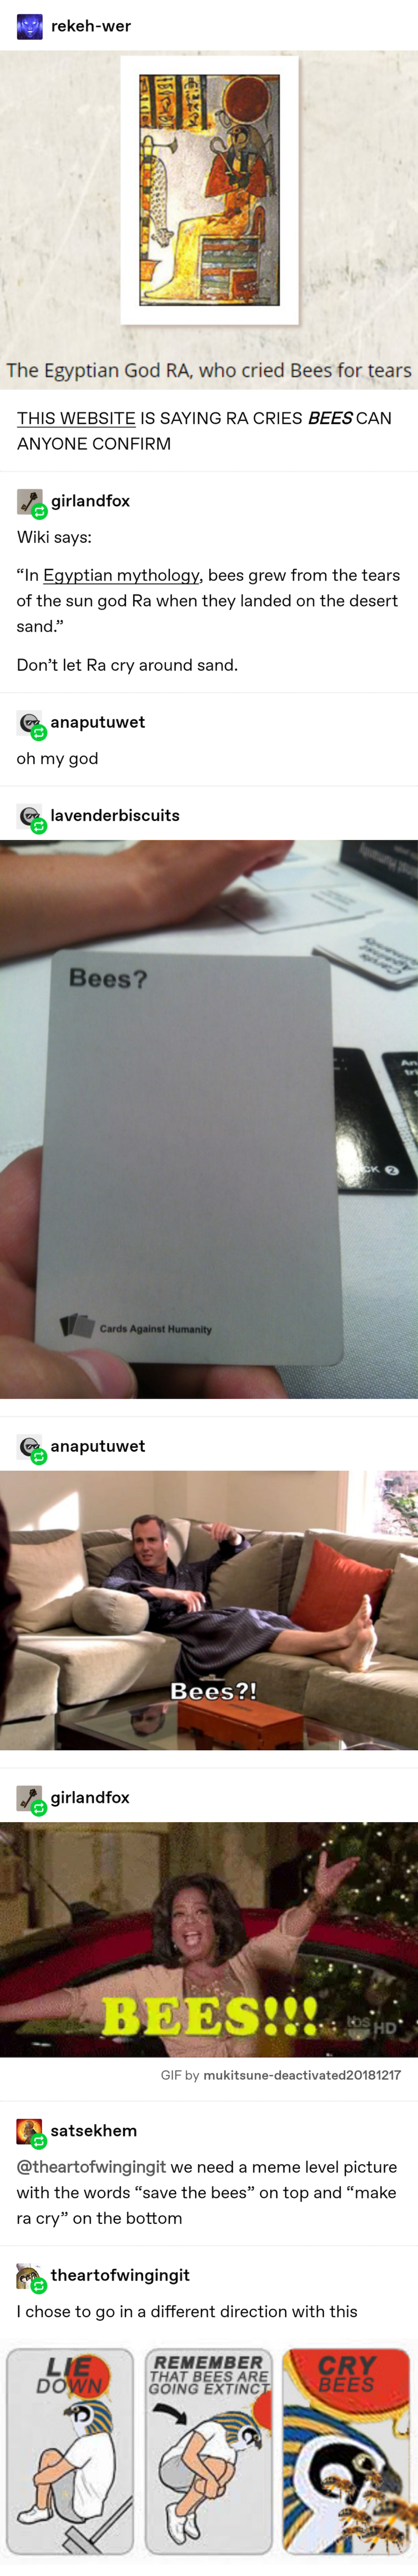 30 Tumblr posts that are somehow funny and educational at the same time